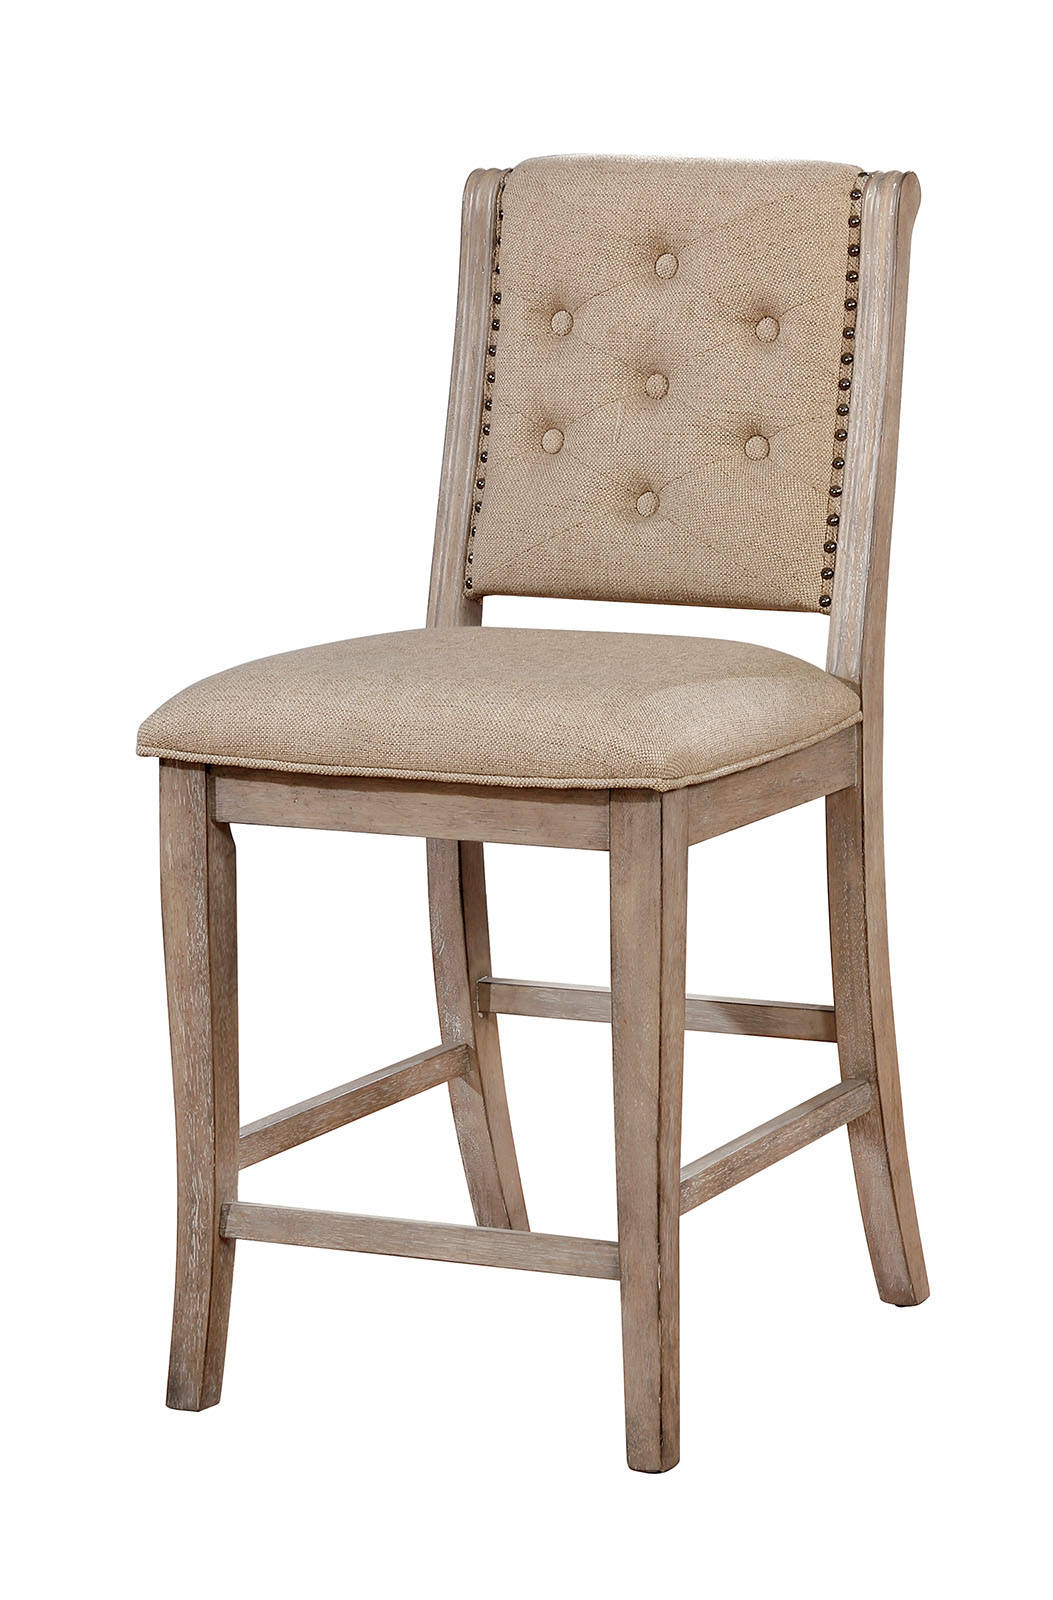 Cool 2 Furniture Of America Ledyard Rustic Natural Counter Height Chairs Alphanode Cool Chair Designs And Ideas Alphanodeonline